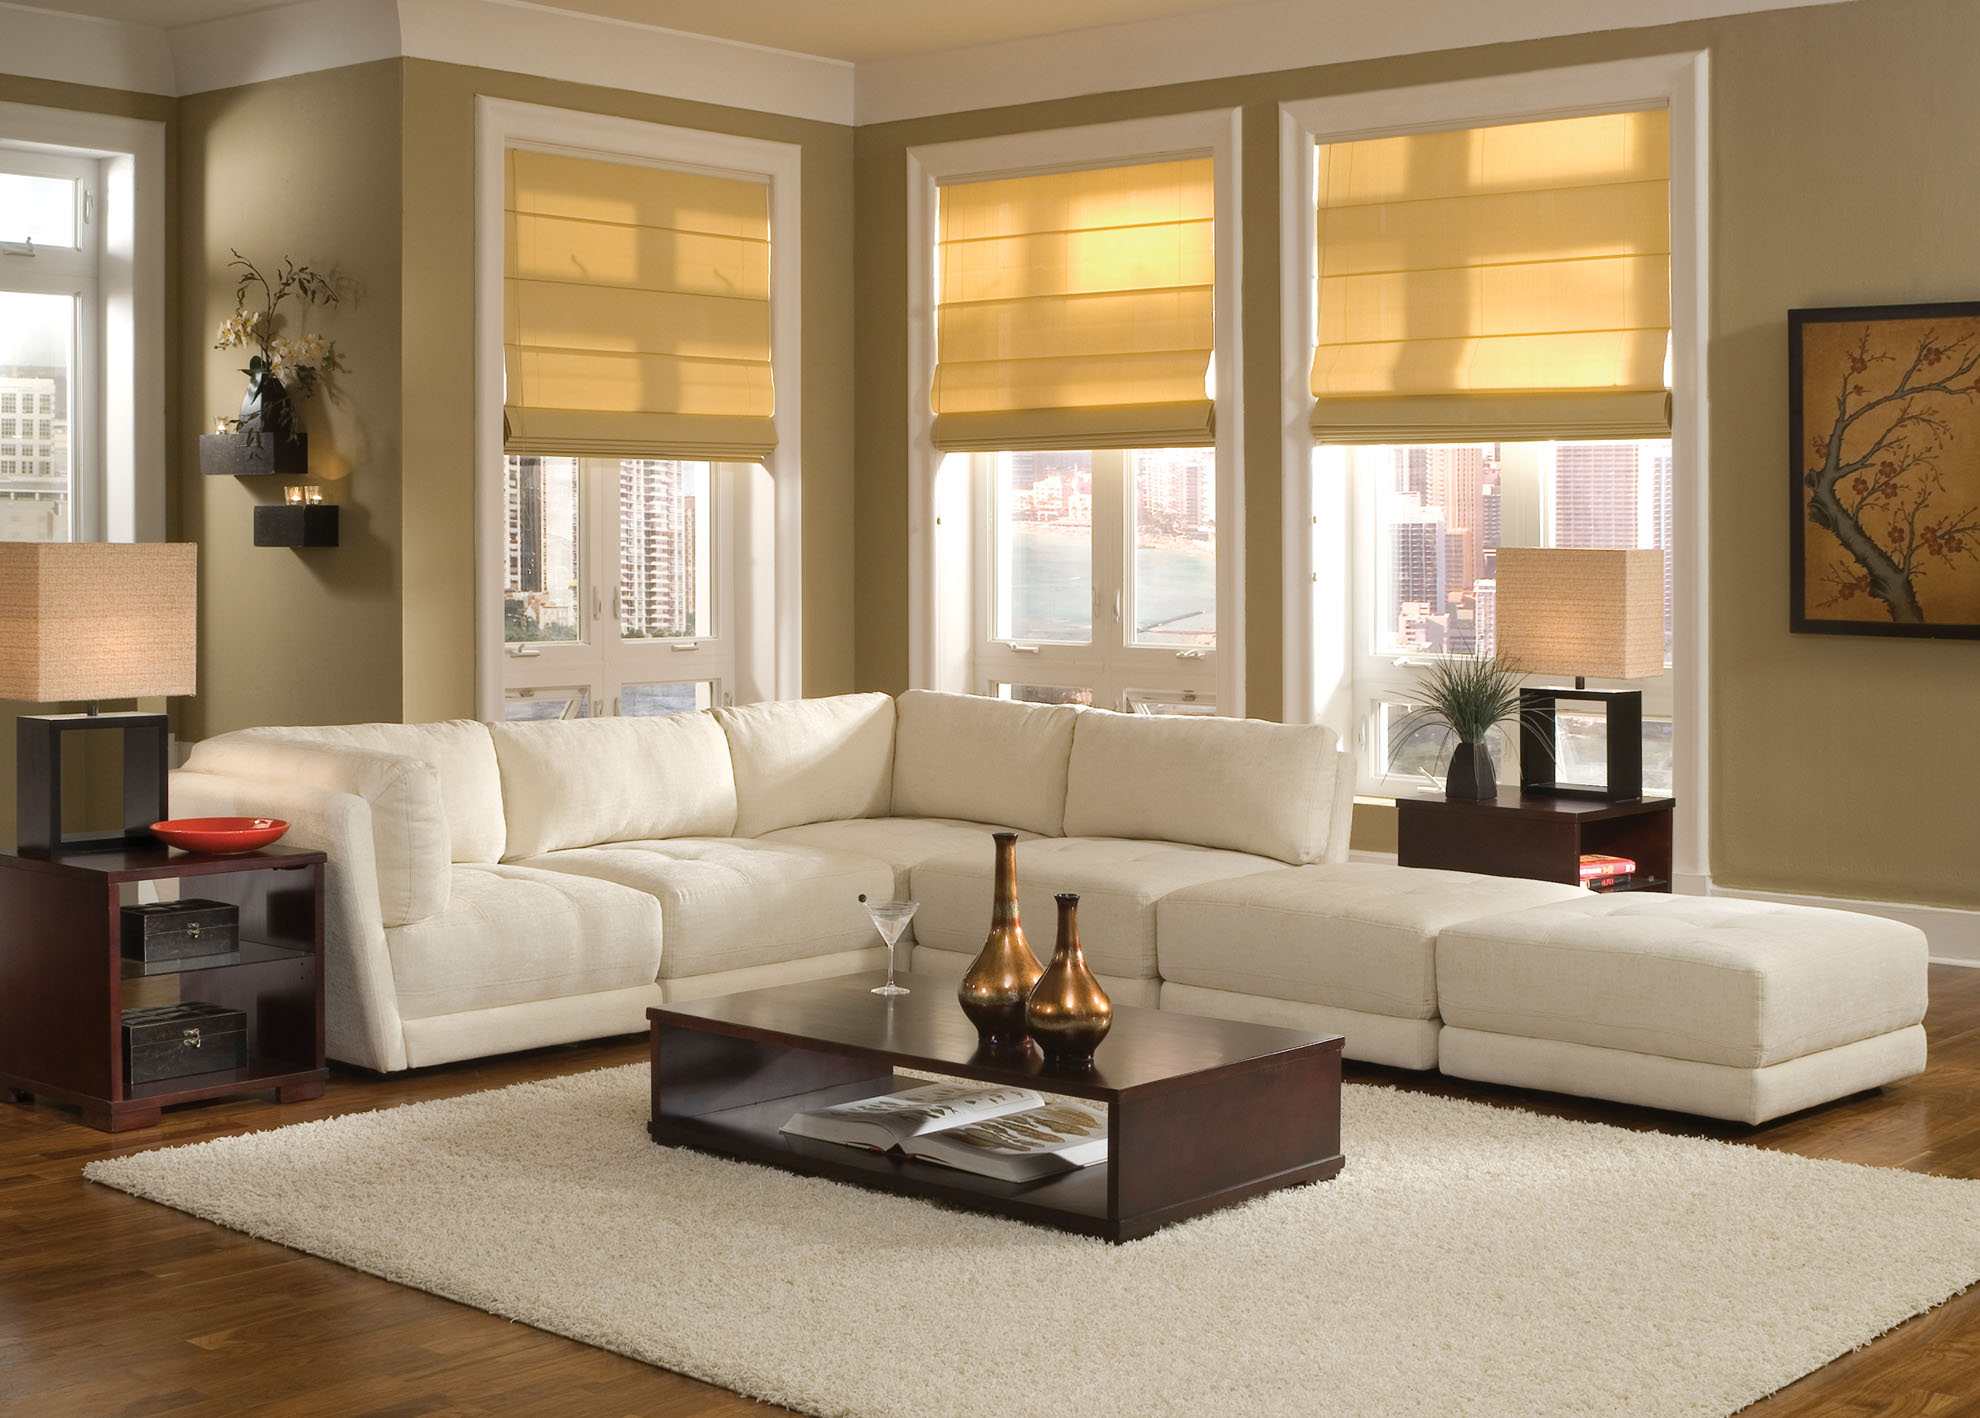 http://hawk-haven.com/wp-content/uploads/2017/02/living-room-couches-photo-20.jpg